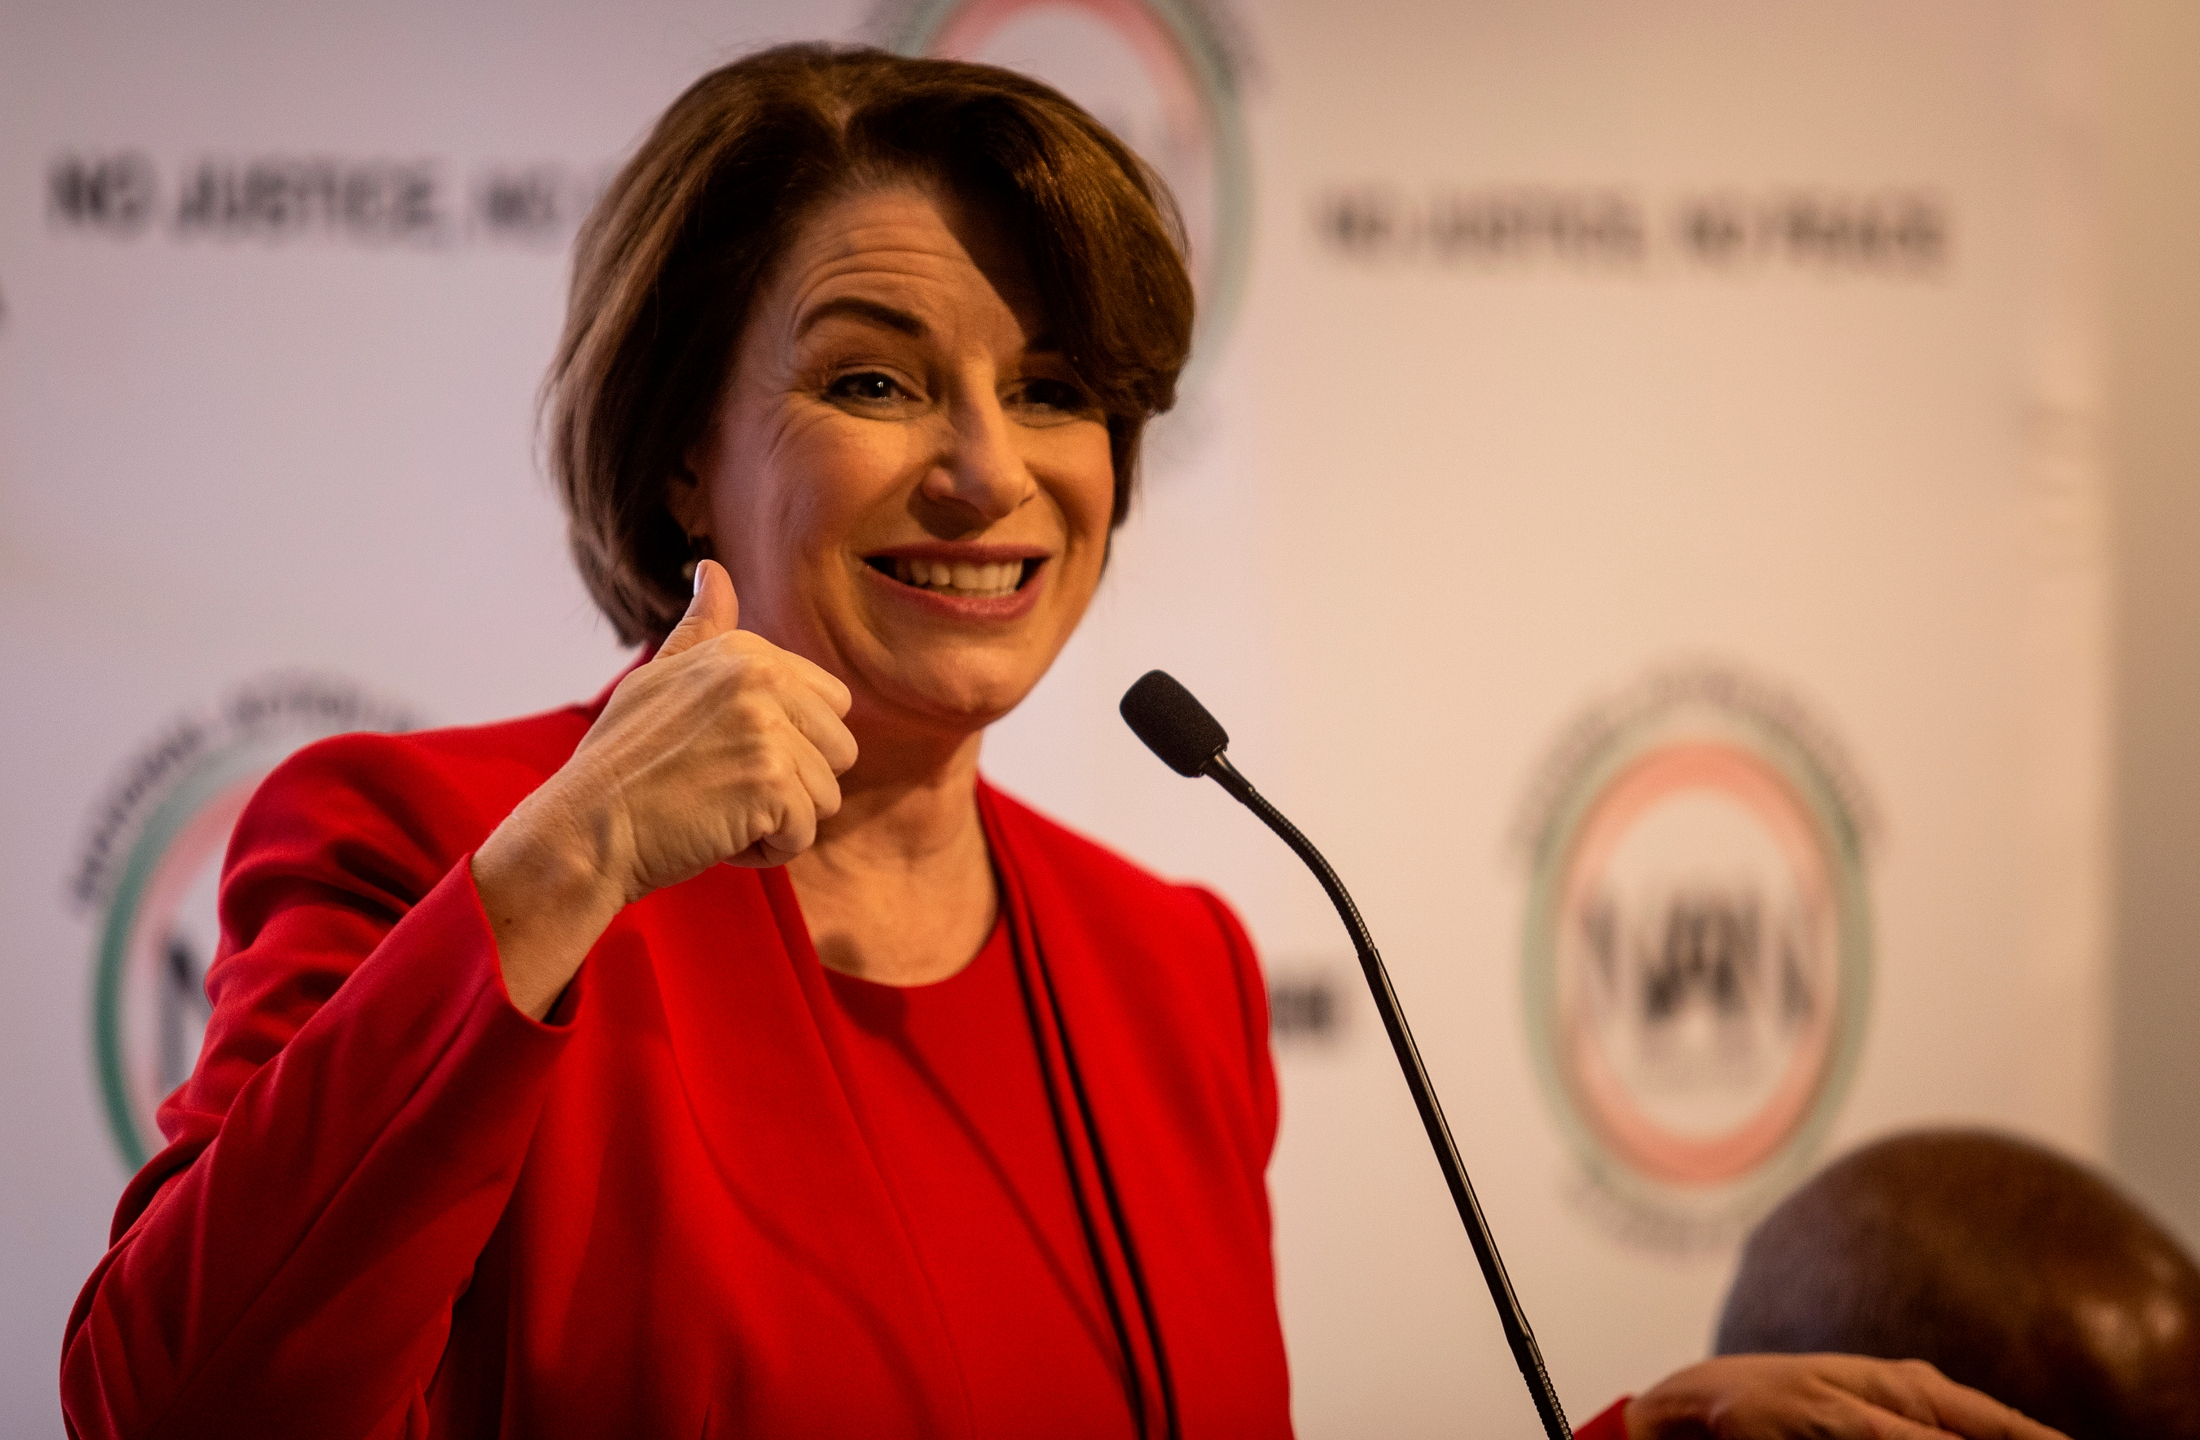 Amy Klobuchar, Klobuchar speaks at Sharpton event in Atlanta